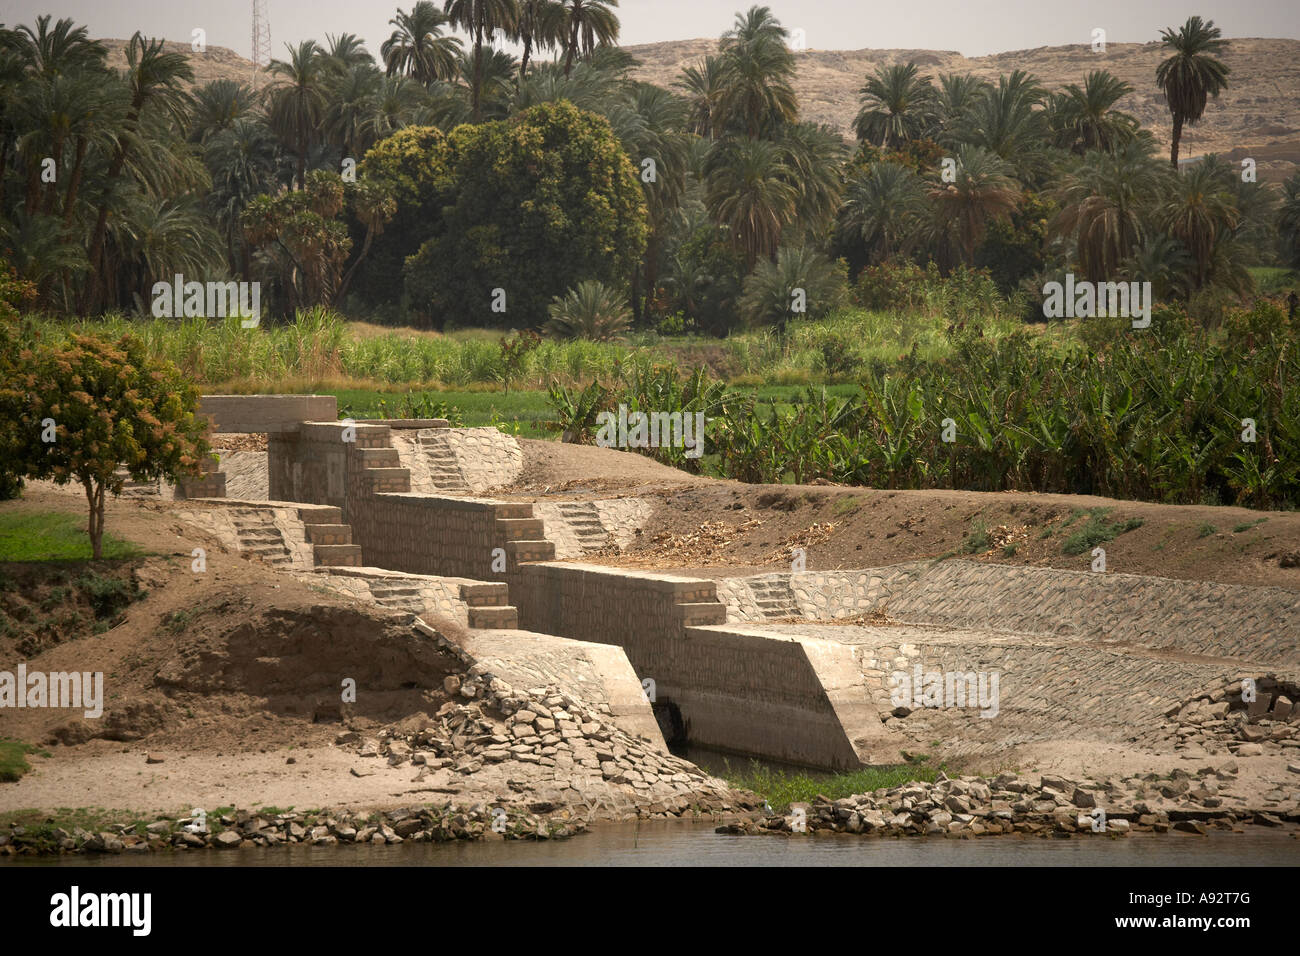 Egypt Nile Irrigation Stock Photos Amp Egypt Nile Irrigation Stock Images